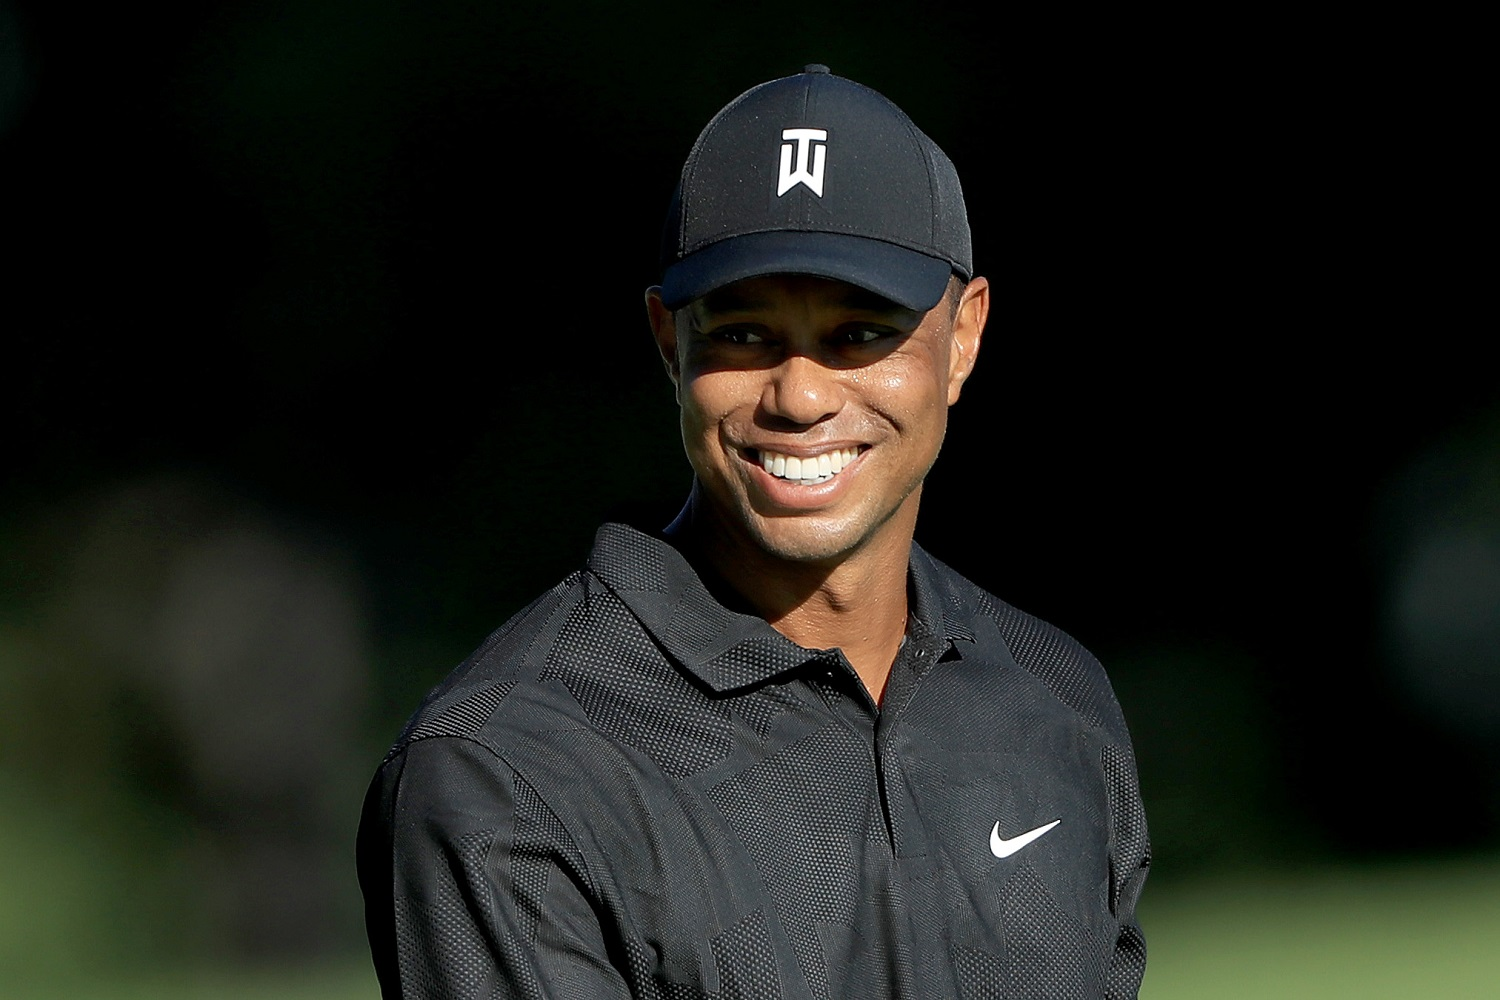 Tiger Woods Is Not One of the Top Betting Favorites to Win the Memorial but There Are Some Interesting Side Wagers to Be Had